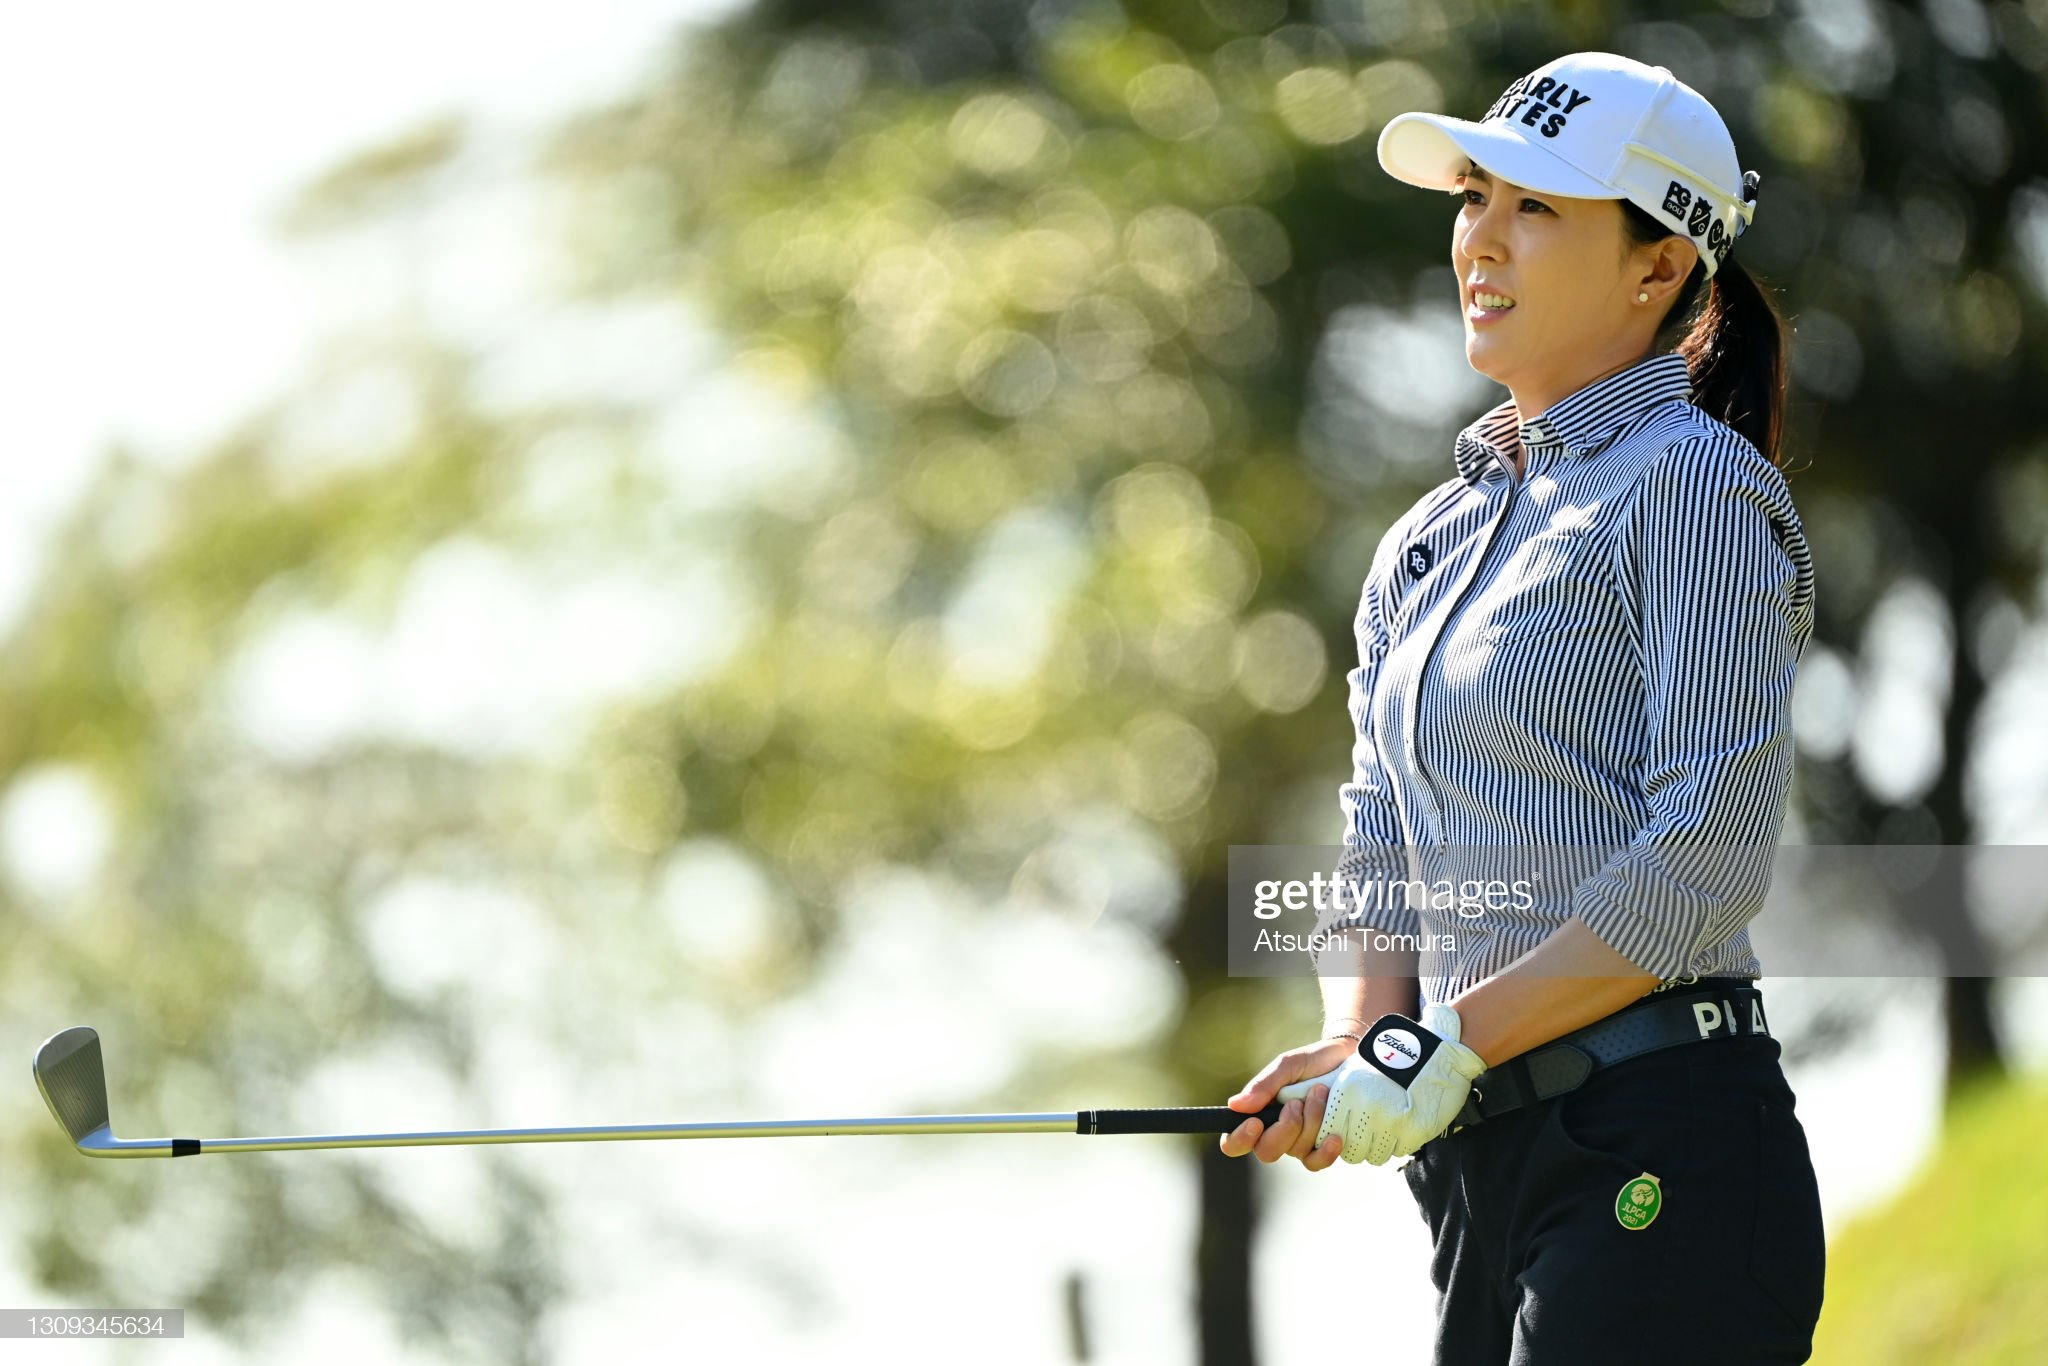 https://media.gettyimages.com/photos/chaeyoung-yoon-of-south-korea-reacts-after-her-tee-shot-on-the-2nd-picture-id1309345634?s=2048x2048